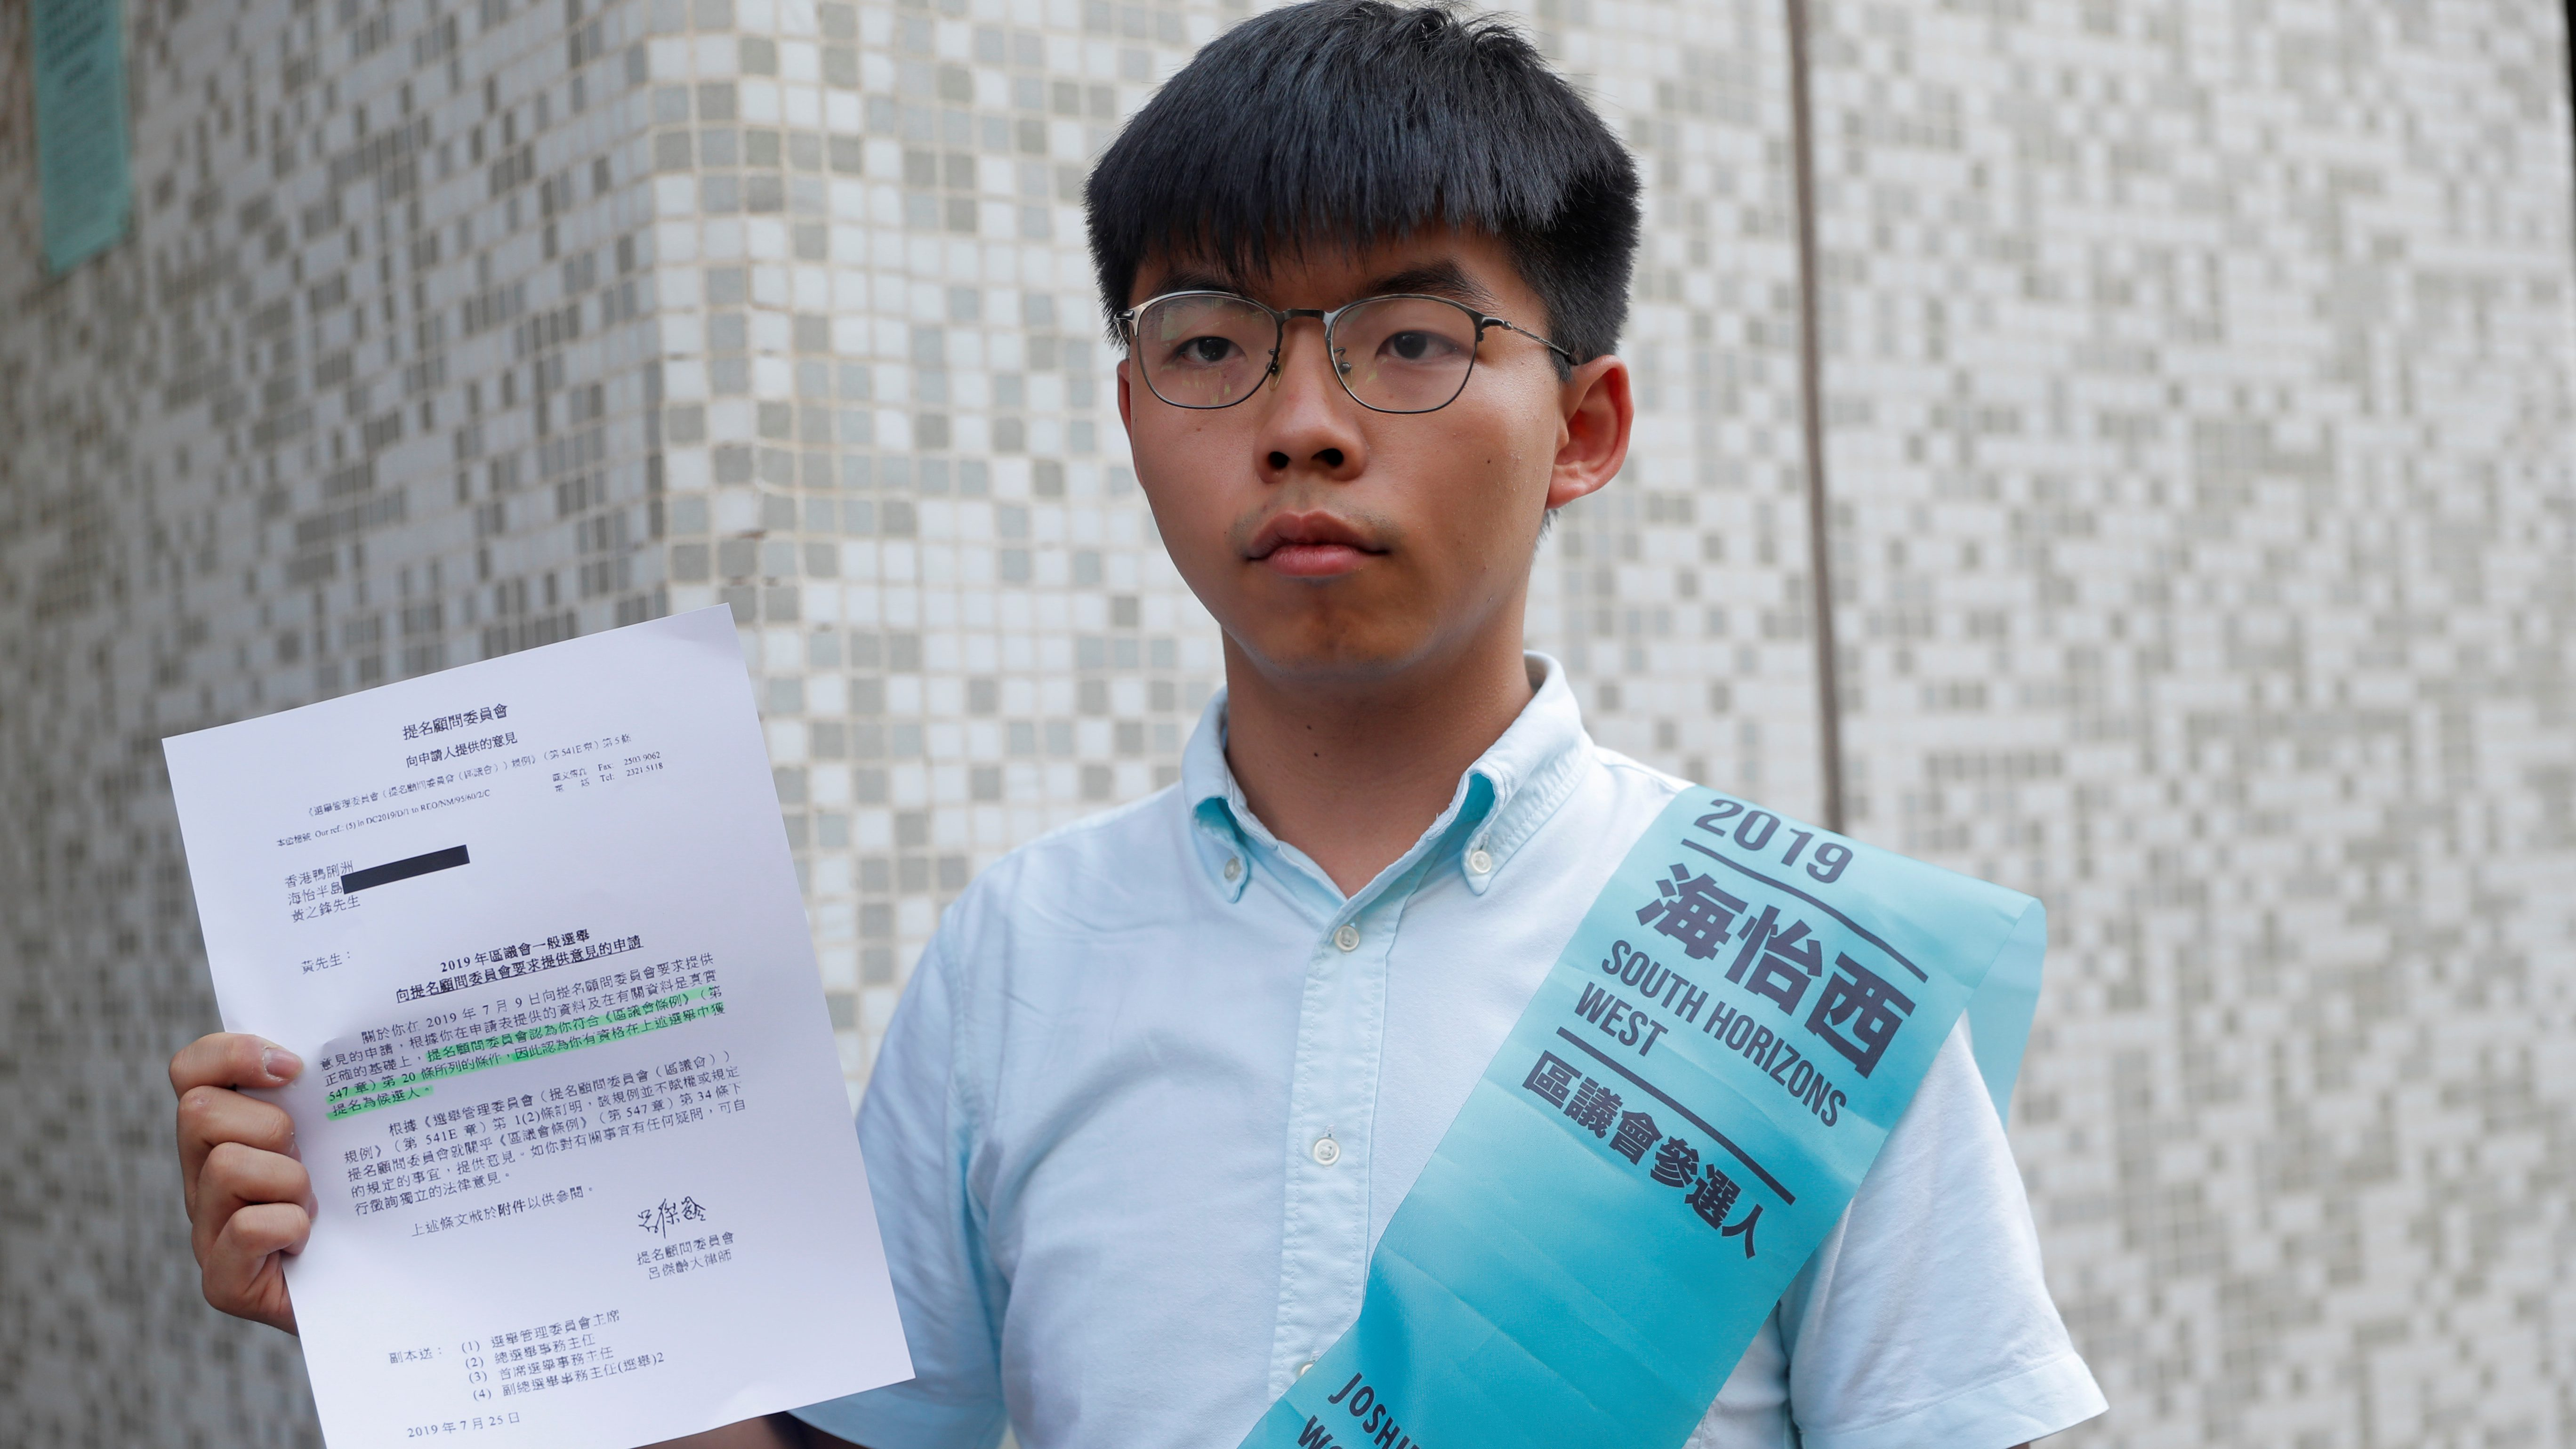 Joshua Wong, secretary-general of Hong Kong's pro-democracy Demosisto party, poses before submitting his application for the race in the 2019 District Council Election, at the Southern District Office in Hong Kong, China, October 4, 2019.